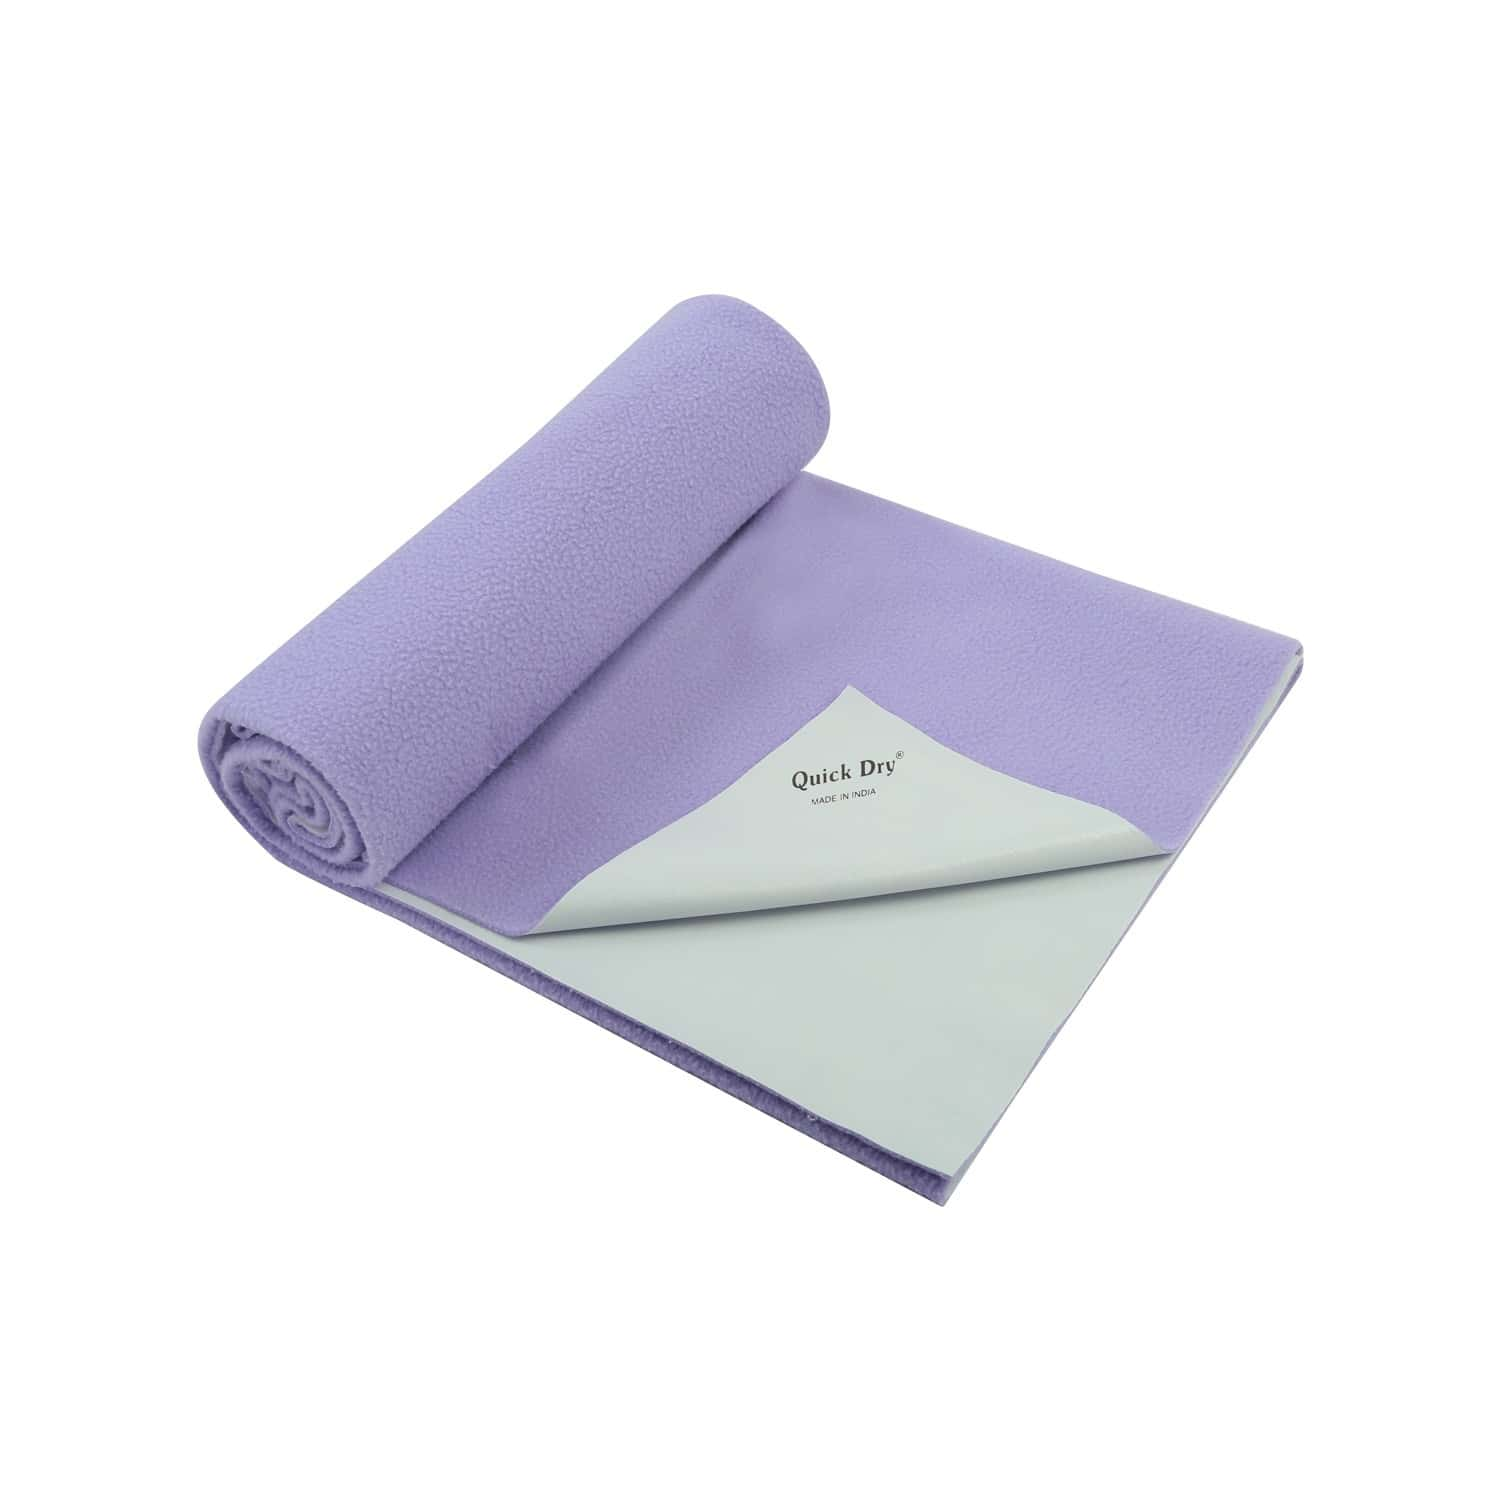 Quick Dry Baby Bed Protector - Plain Lilac- Small - 70 X 50 Cms